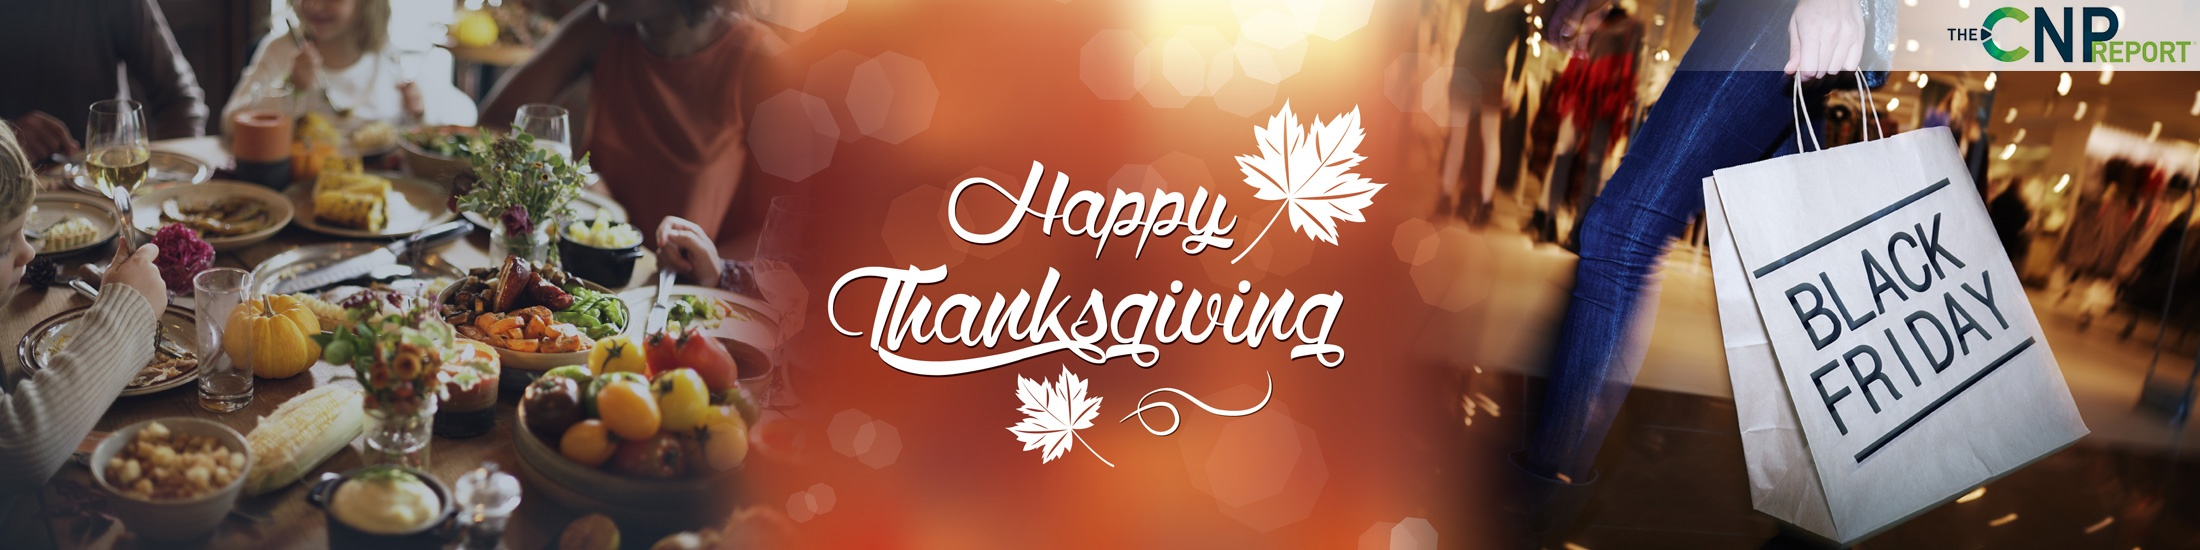 Happy Thanksgiving from Card Not Present and the CNP Report